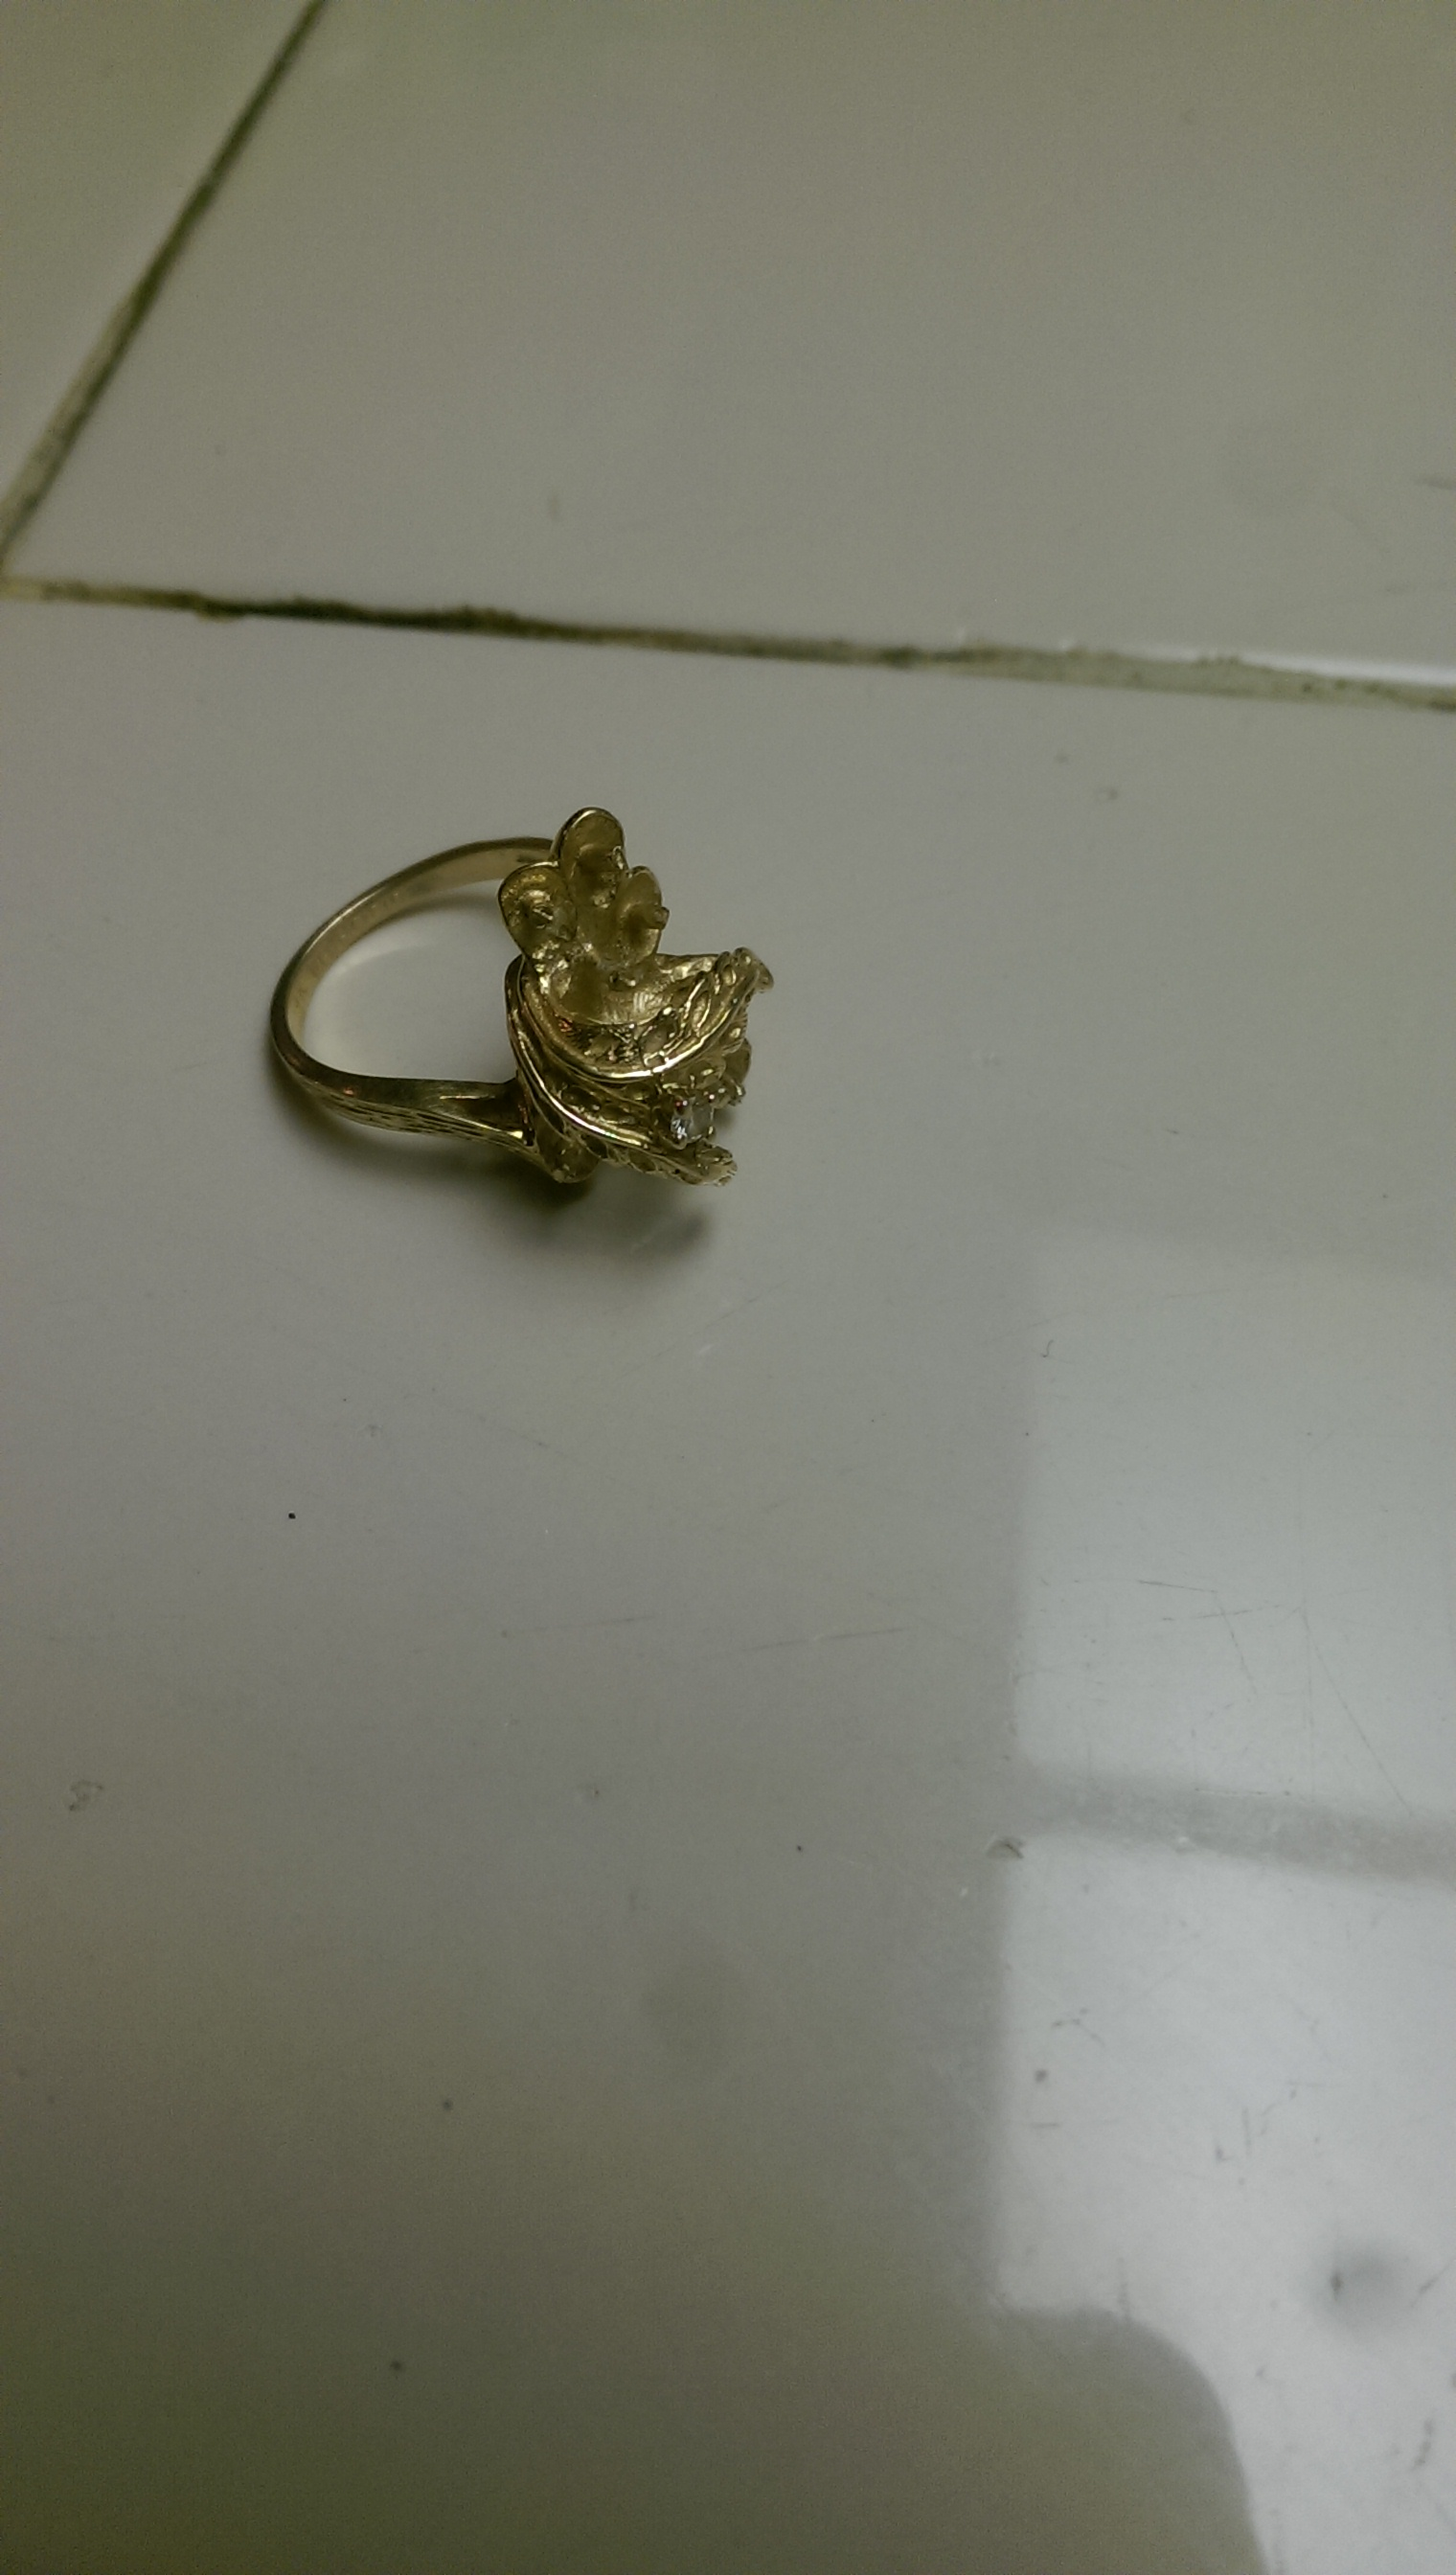 4b2fe11bf2f 18k gold ring picture Mar-10-2019 Country  United States For Sale ...